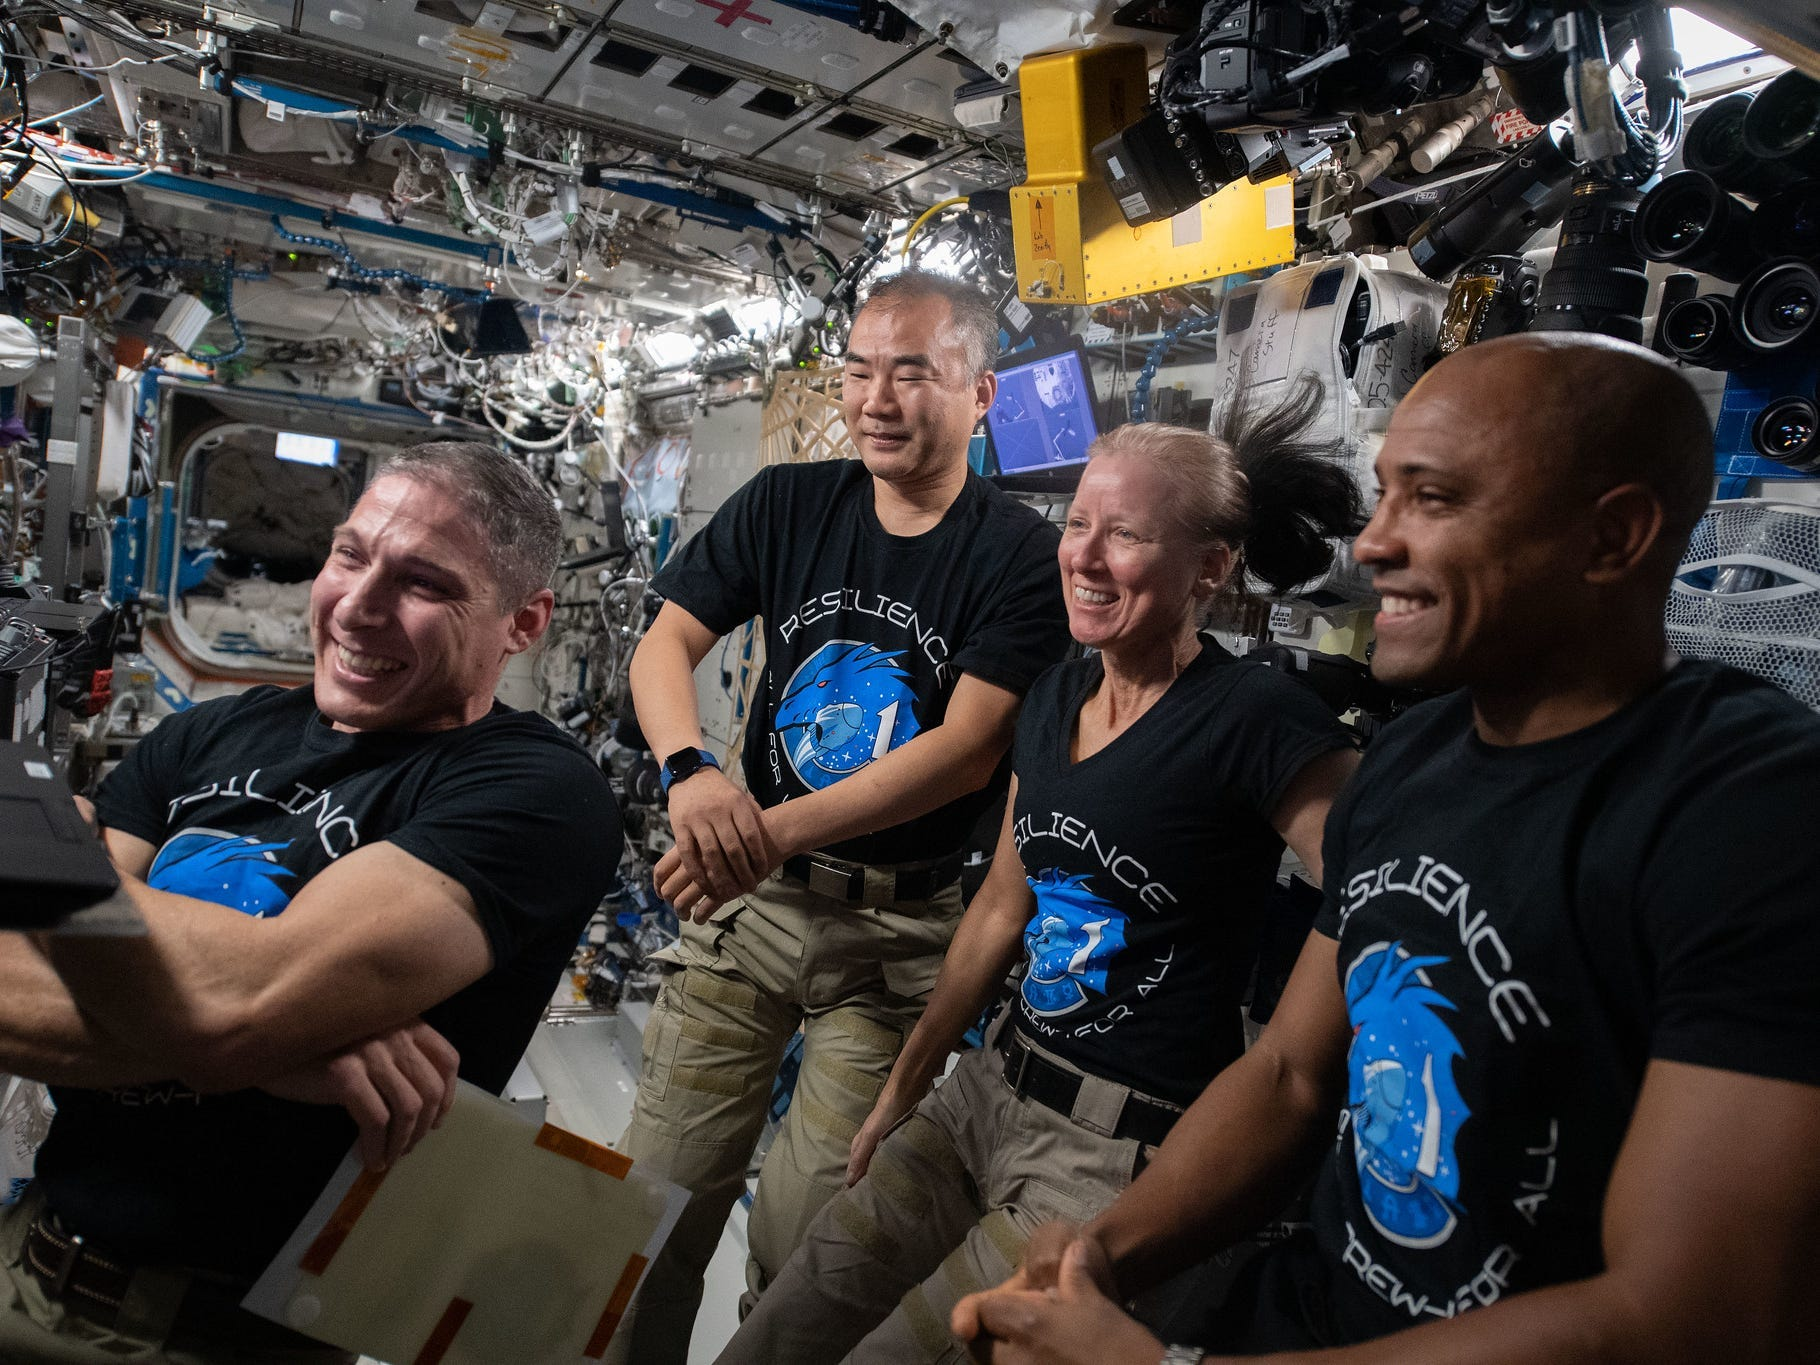 Mike Hopkins, Soichi Noguchi, Shannon Walker, and Victor Glover joining a video conference, 7 February 2021. (NASA)